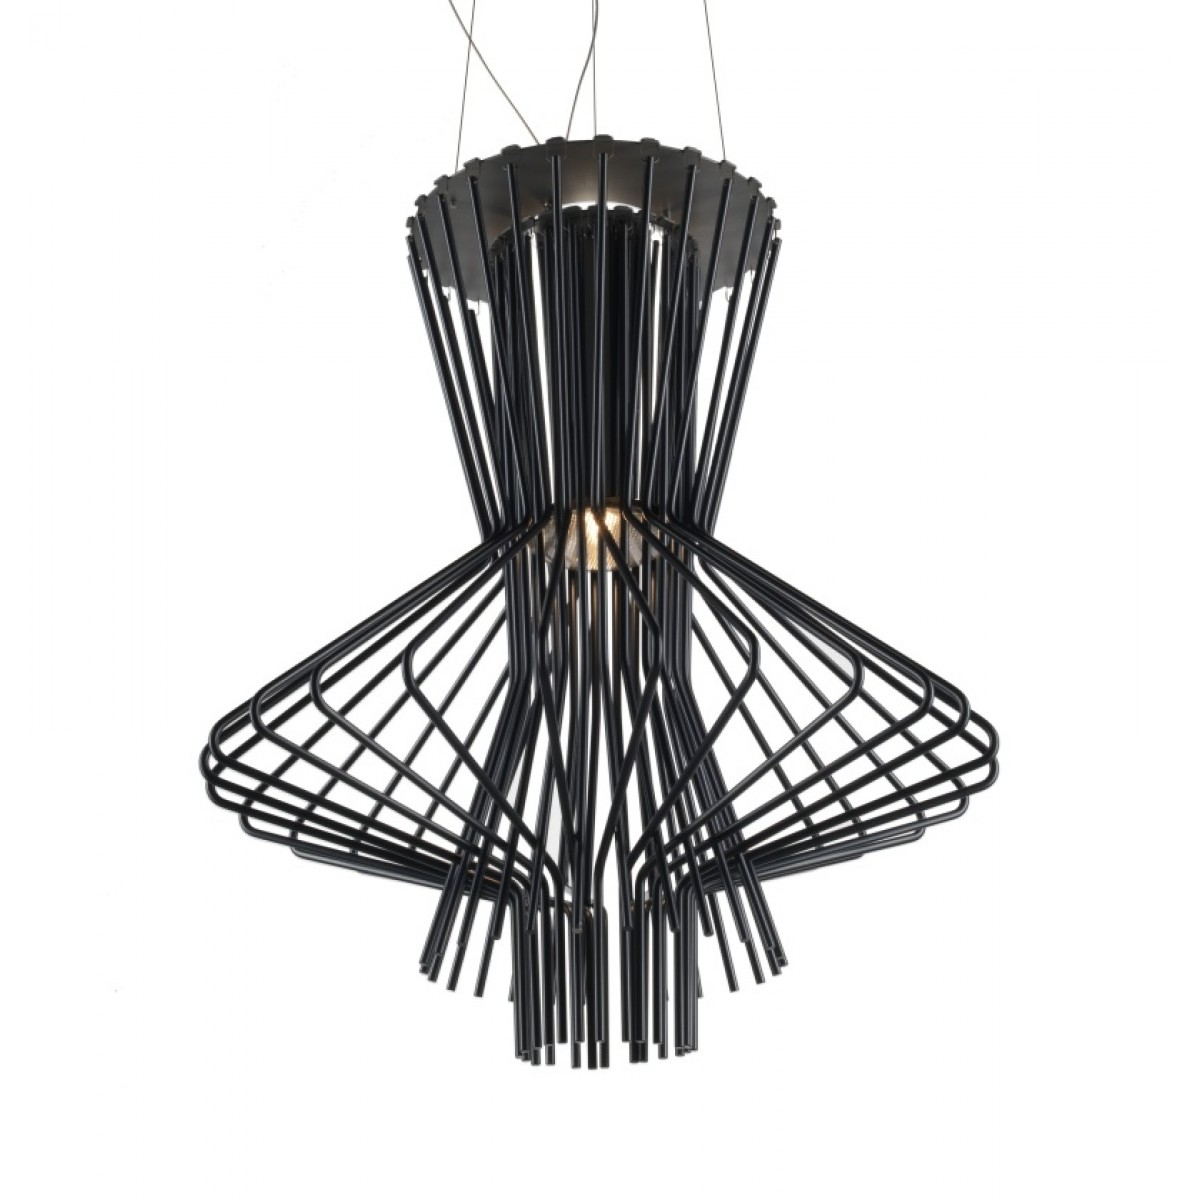 Allegretto Ritmico Pendant Lamp cable of 5 meters ø51cm Black